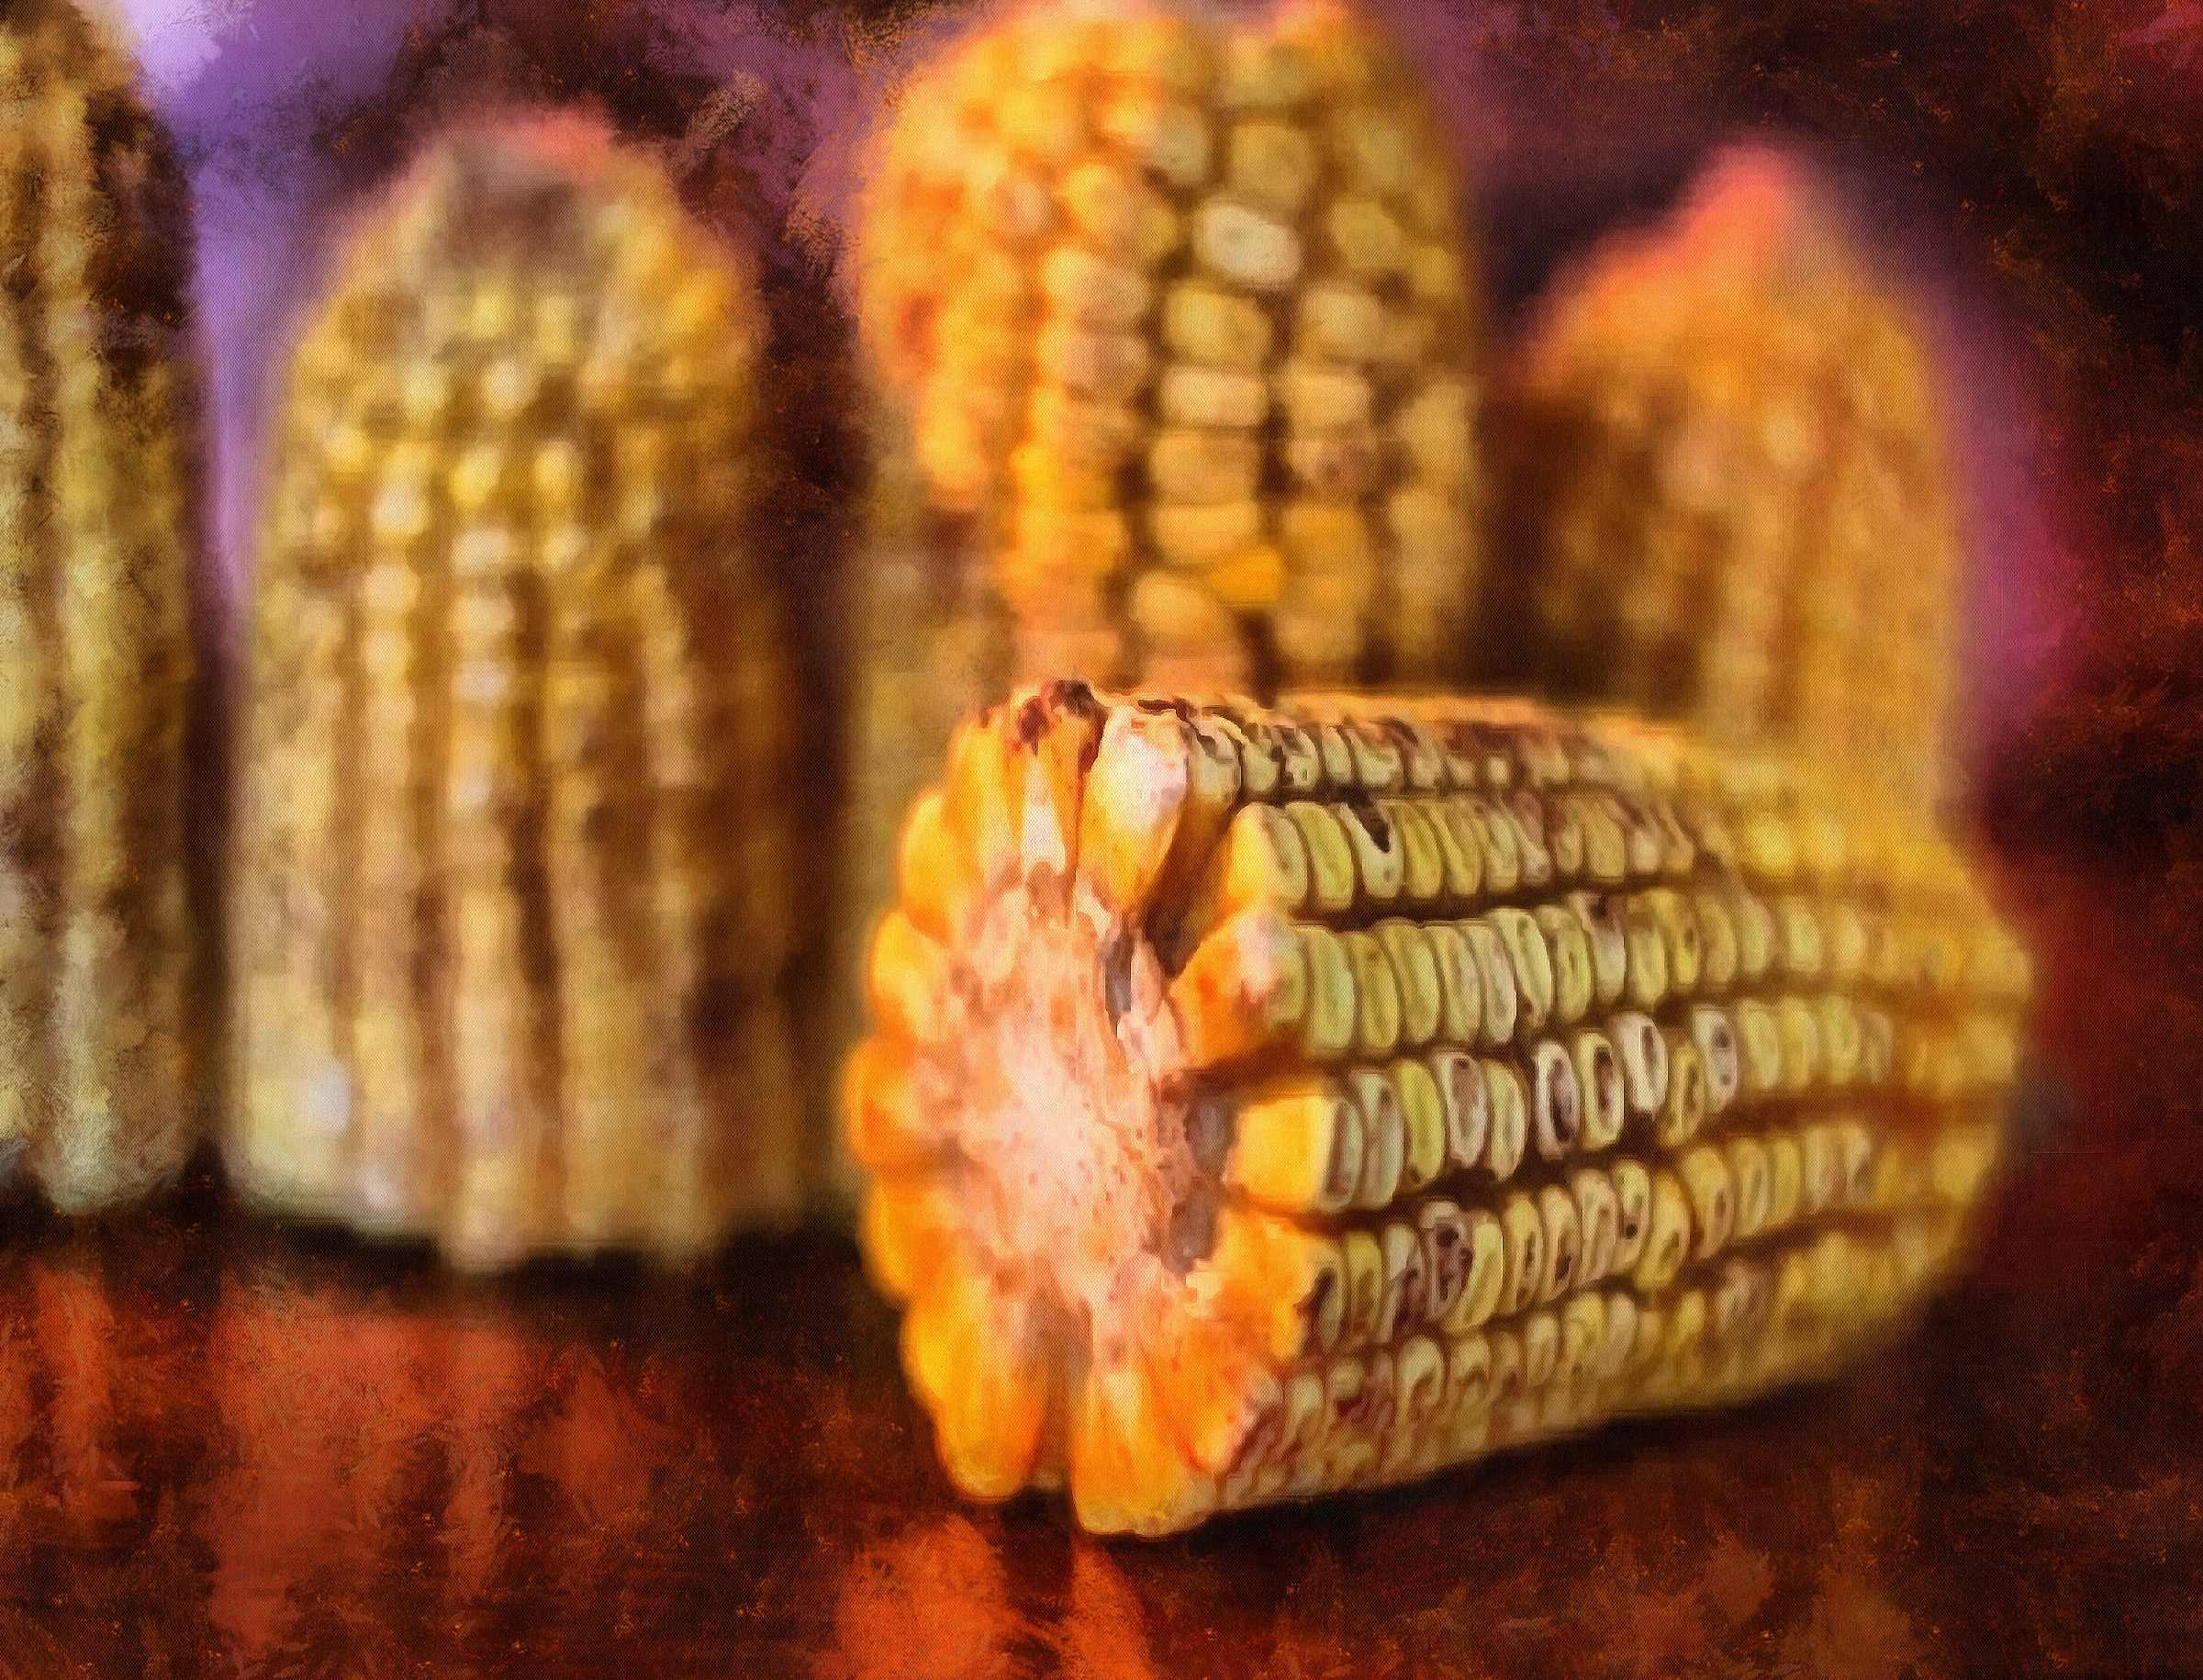 <br>corn on the cob, corn cobs, corn seeds,